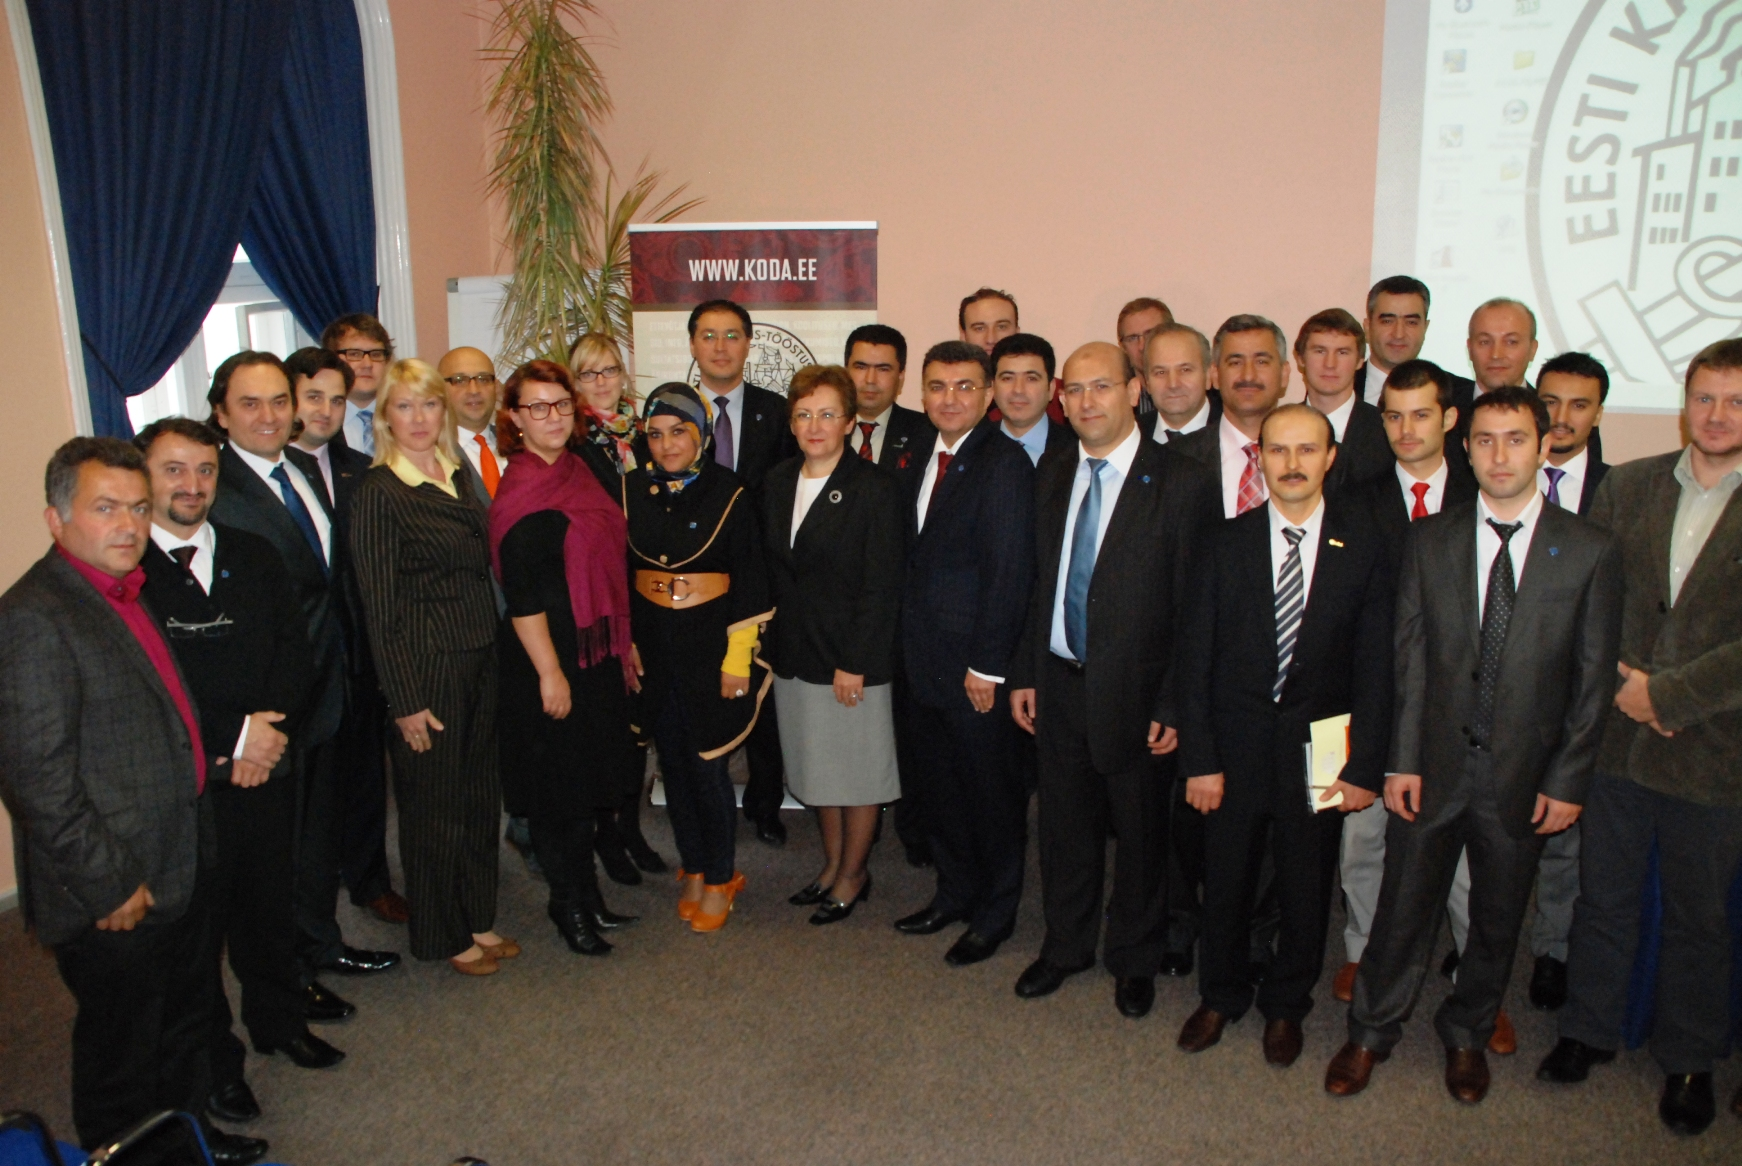 2012-09-27-UNITEE's Trade Mission to the Baltic States of Estonia and Latvia  (1)